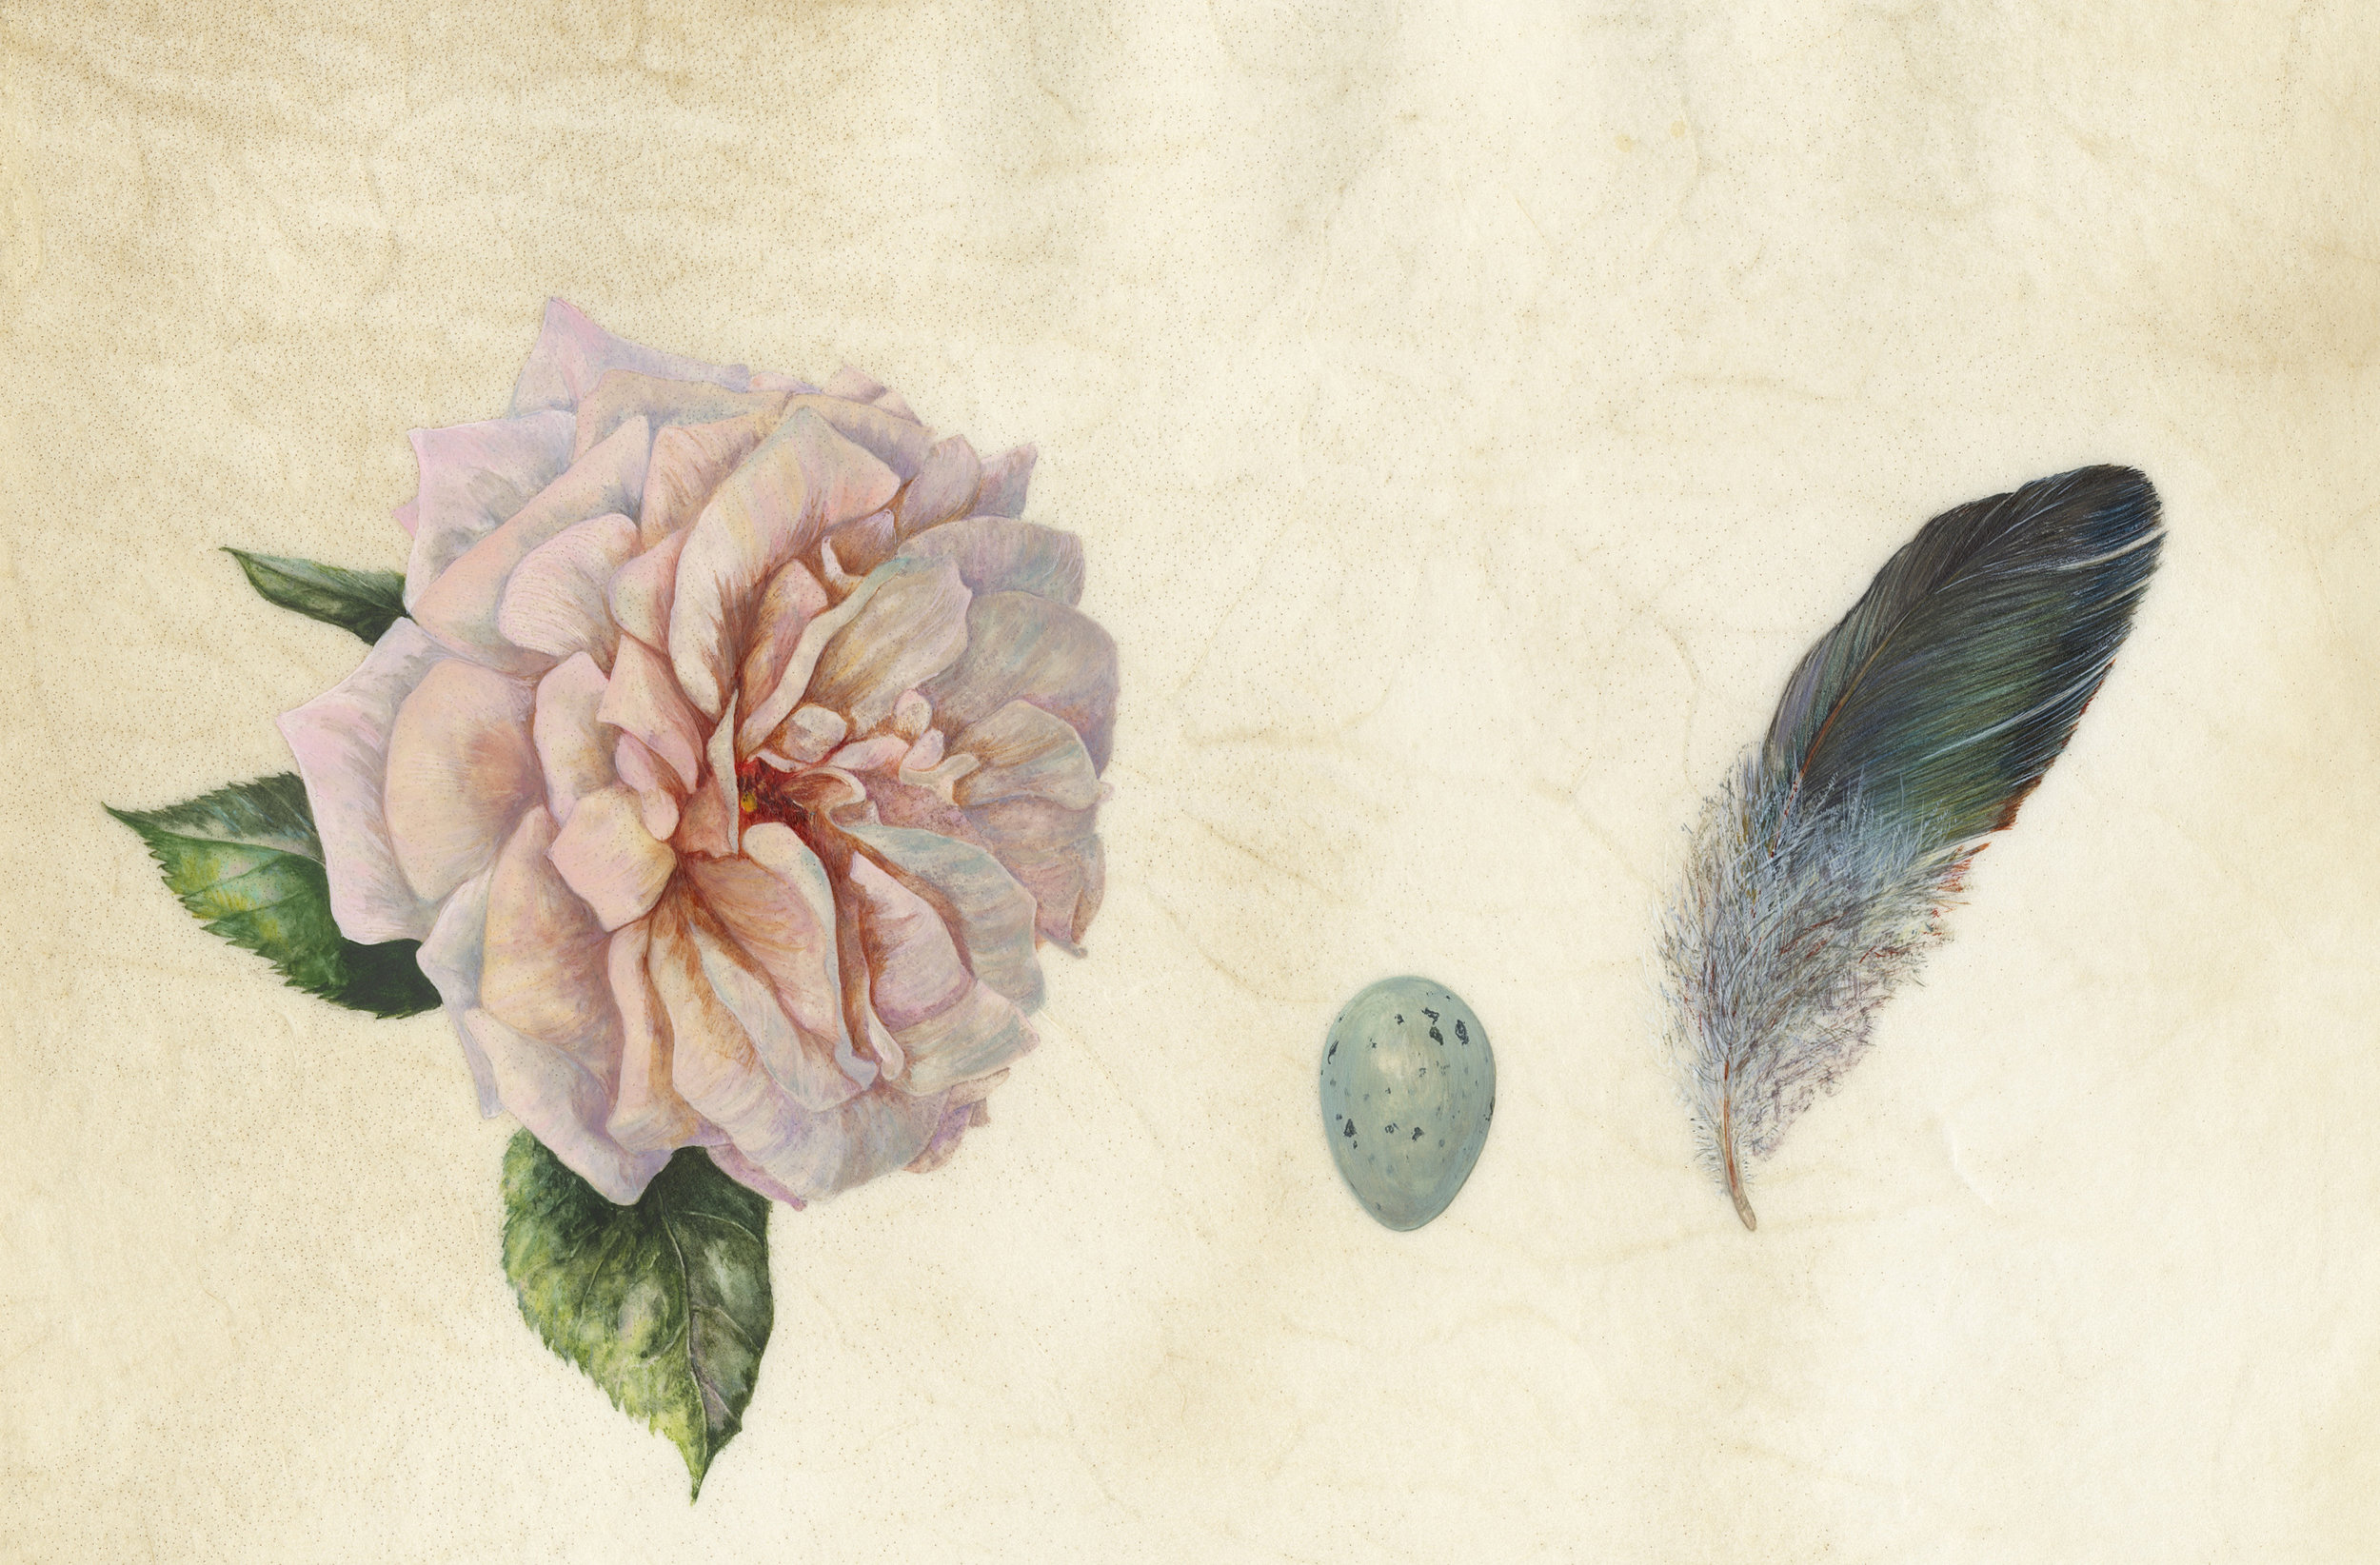 Rose, Thrush Egg and Feather  watercolour on vellum  25 x 15 cm image  48 x 38 cm framed  SOLD